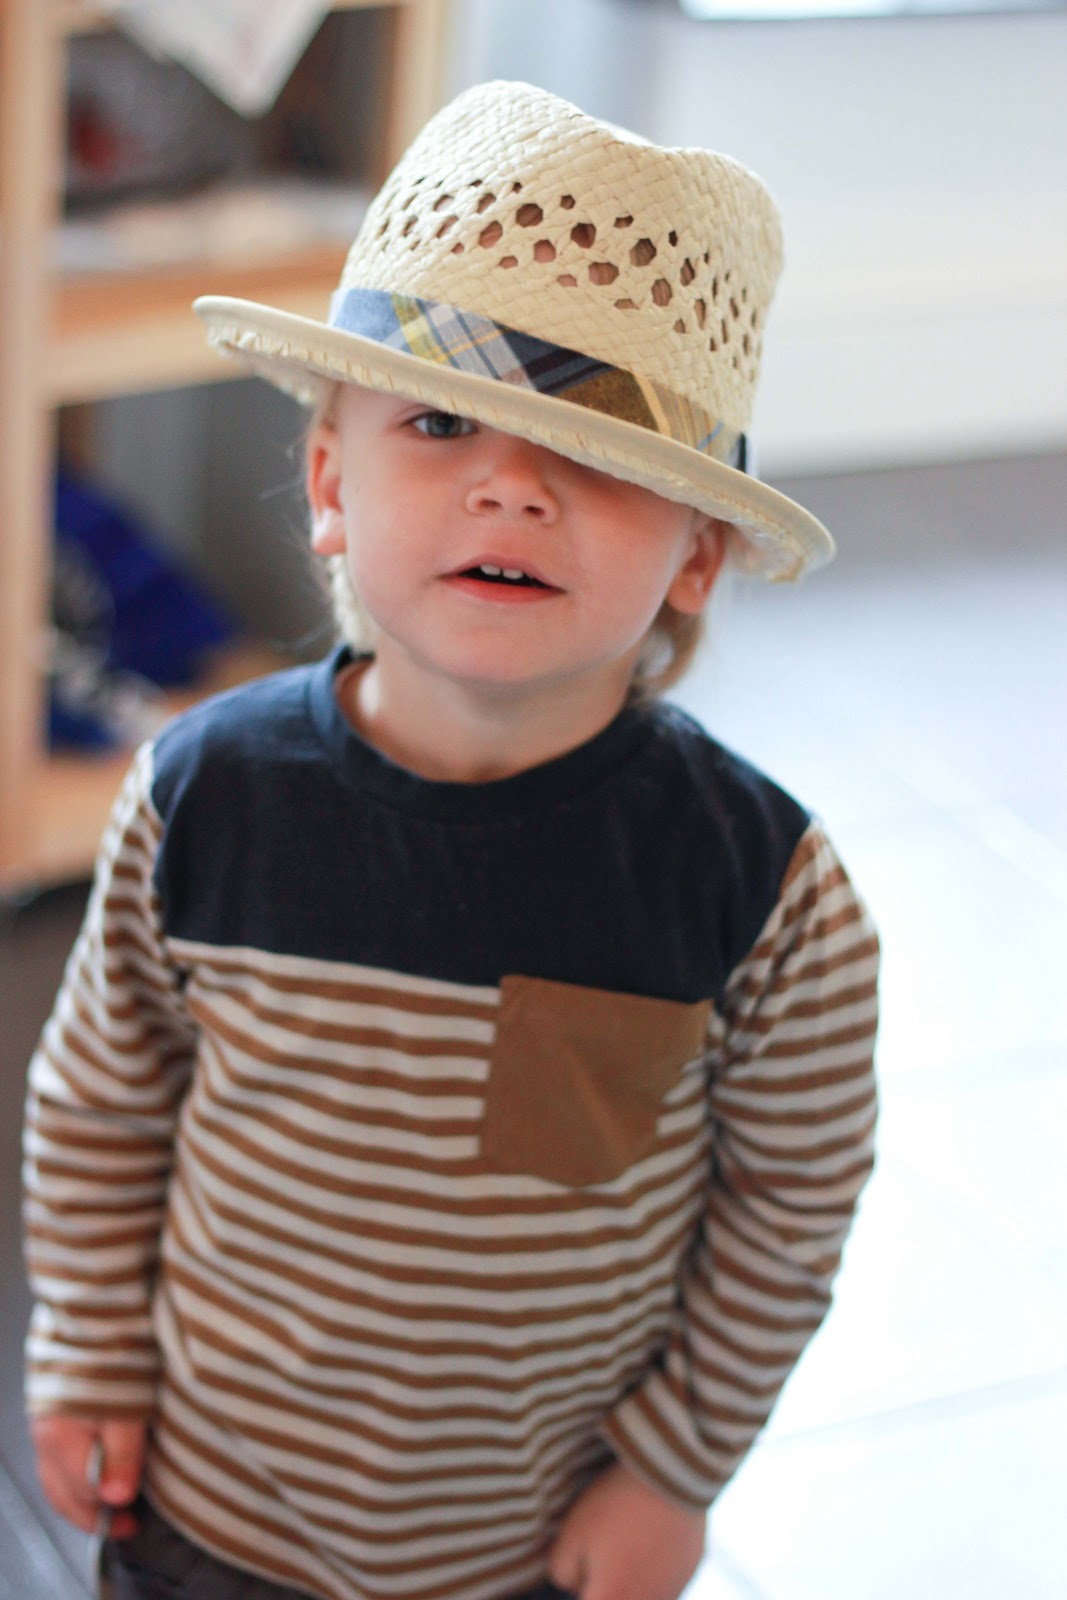 boys straw hats found in: Big Boy Kris Toyo Straw Diamond Crown Fedora Hat, Kid's Toyo Straw Classic Fedora Hat, Goorin Bros' new Big Boy.